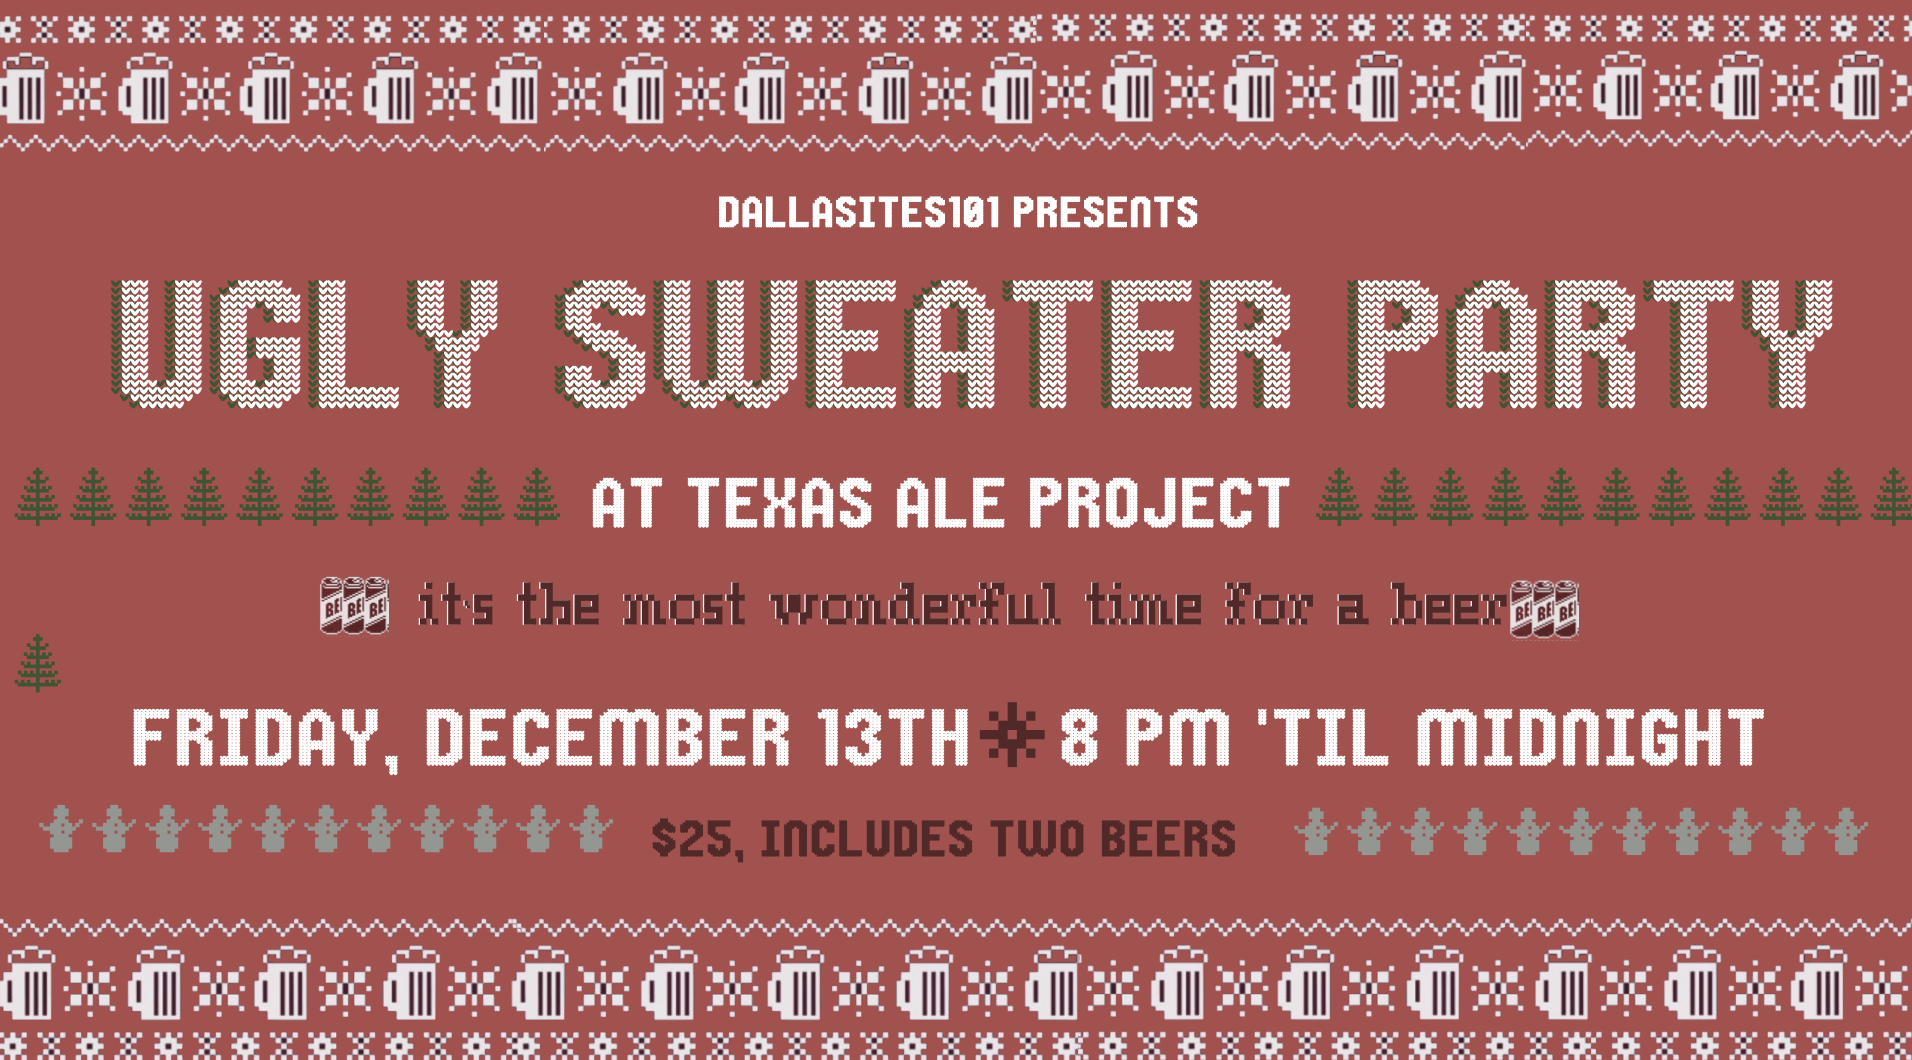 Ultimate Ugly Sweater Party Dallasites101